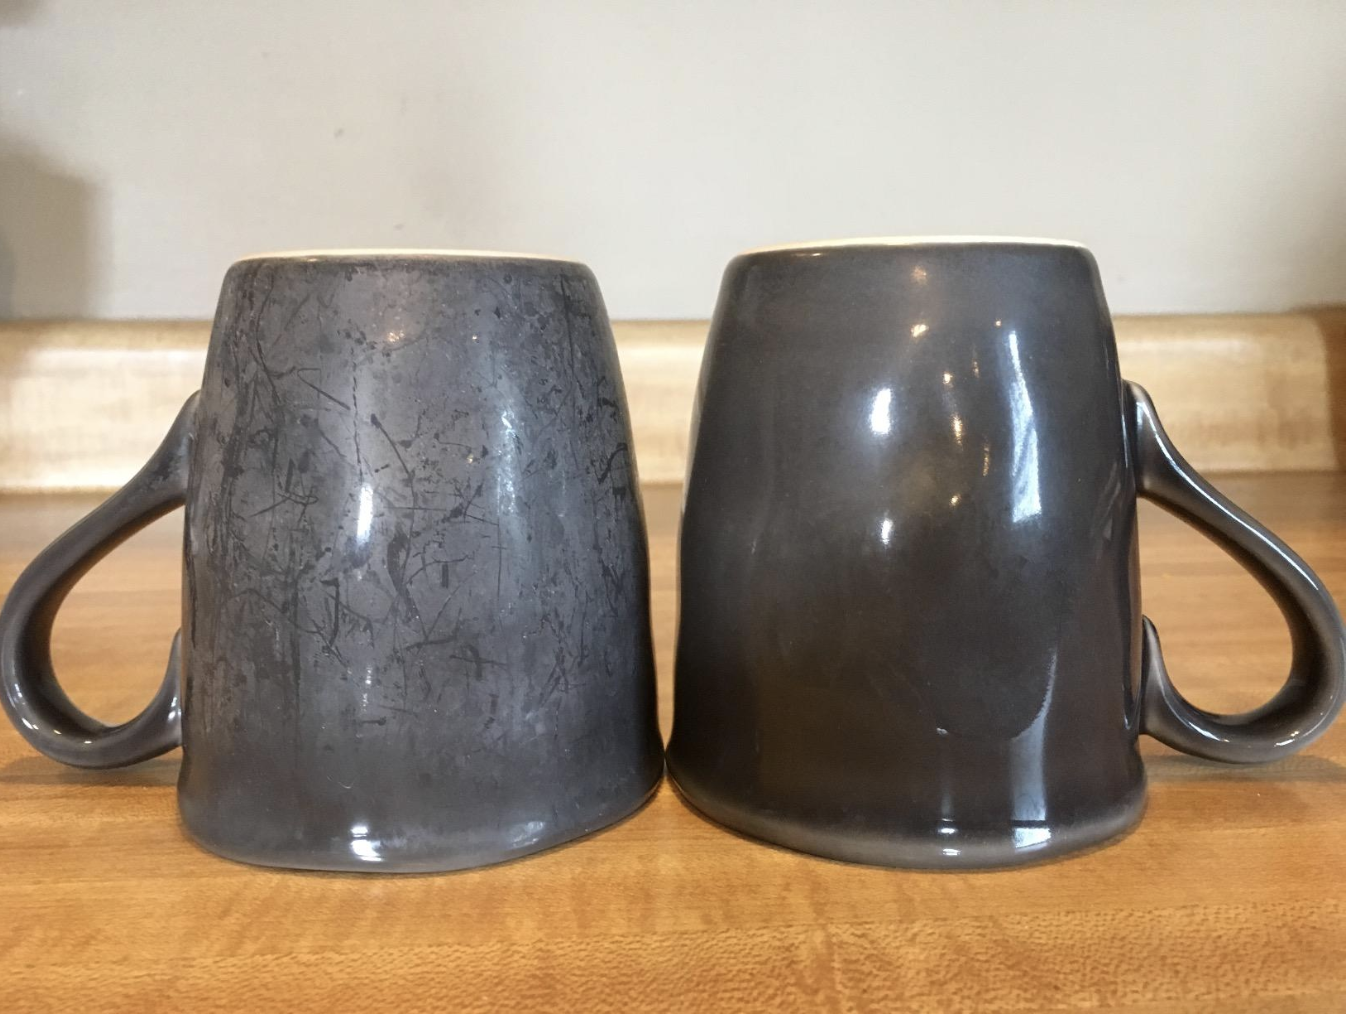 A hard water stained mug and a totally clean version of it sitting on a counter together